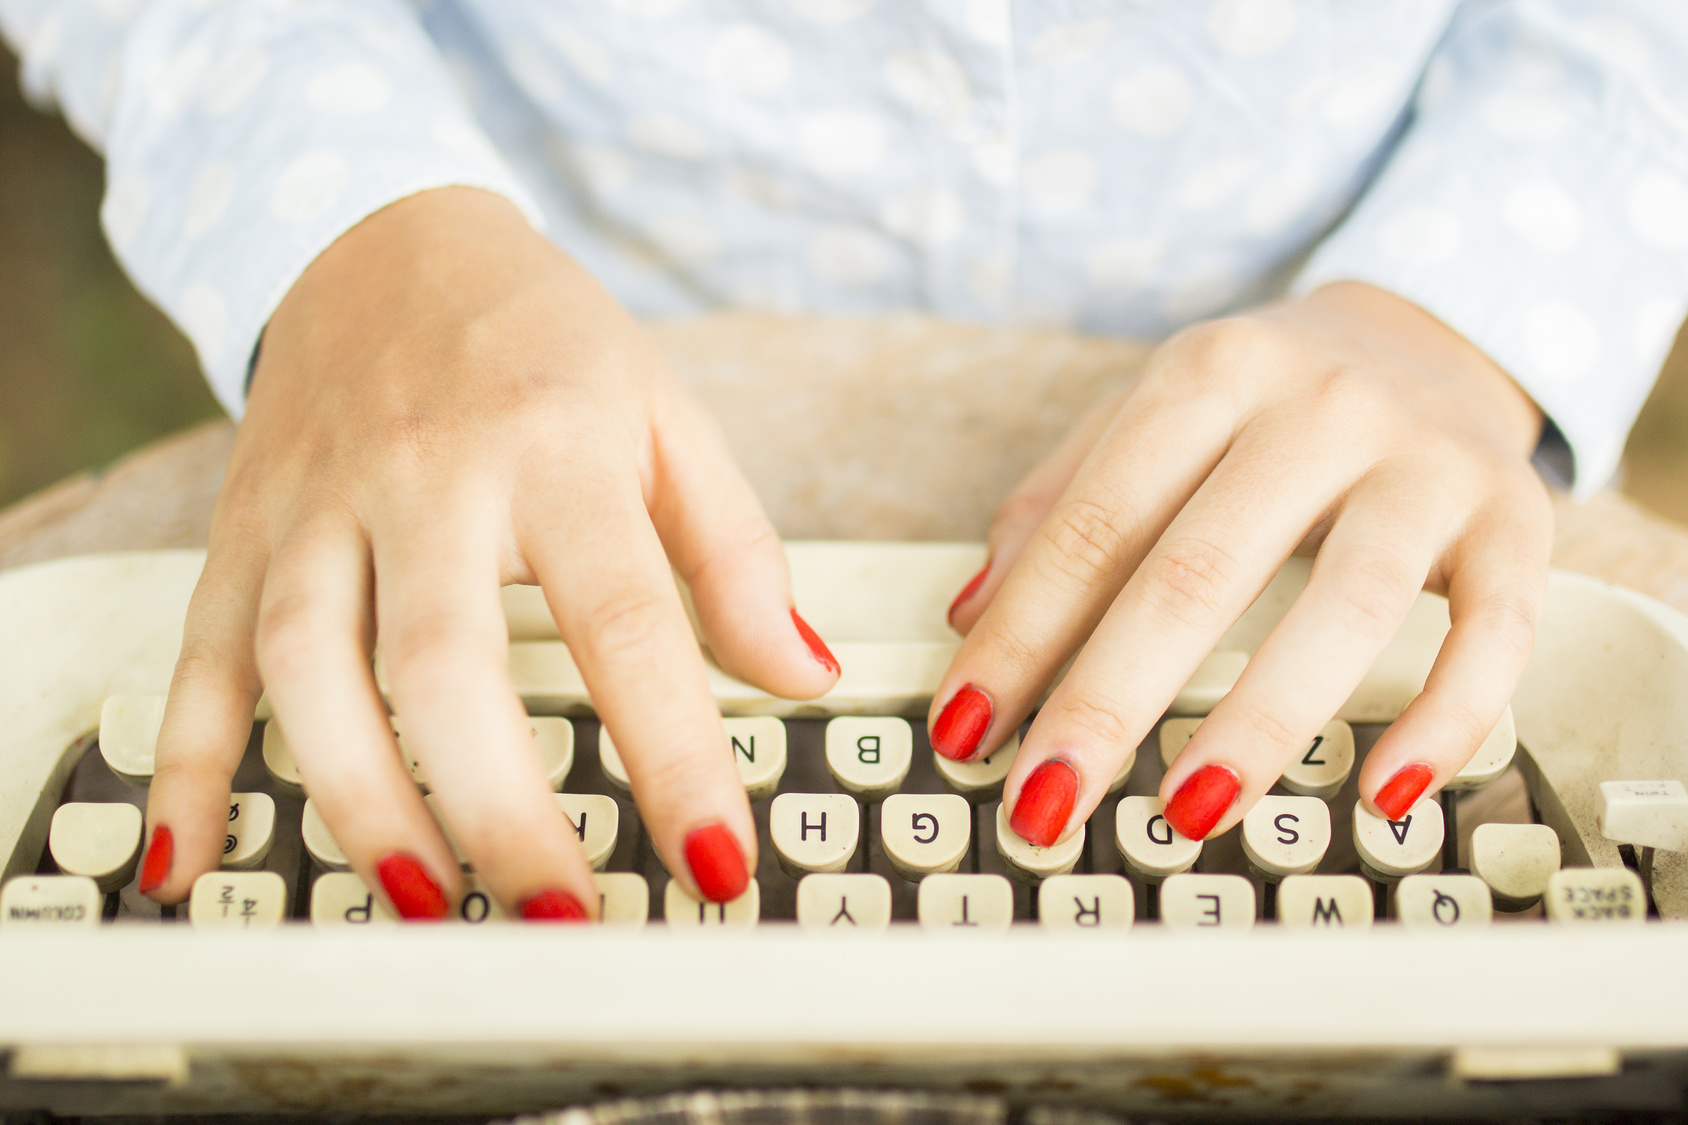 woman typing on a typewriter